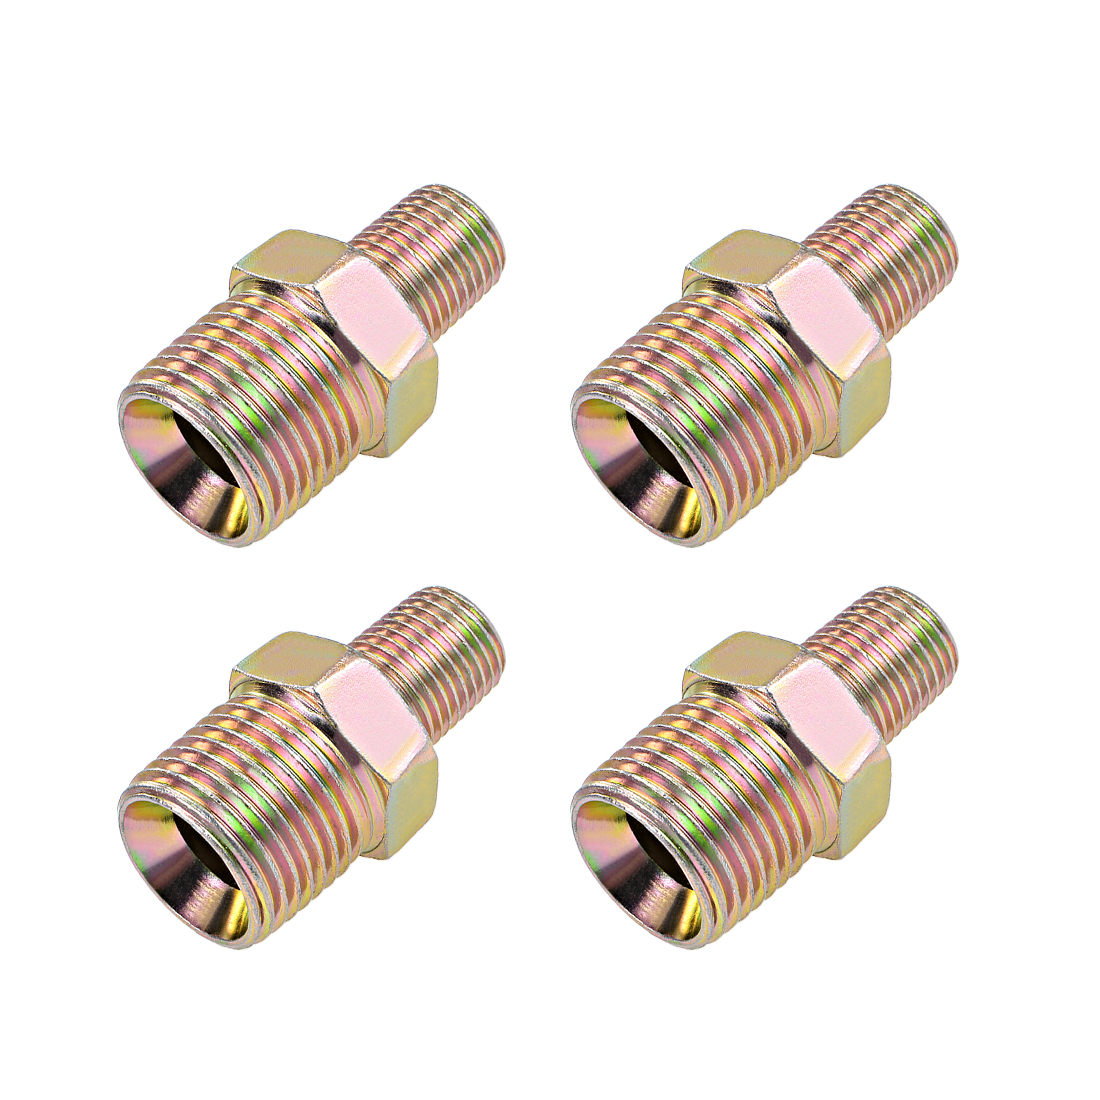 Reducing Pipe Fitting Reducer Hex Nipple 1/4x1/2 BSP Male Connector Copper 4Pcs